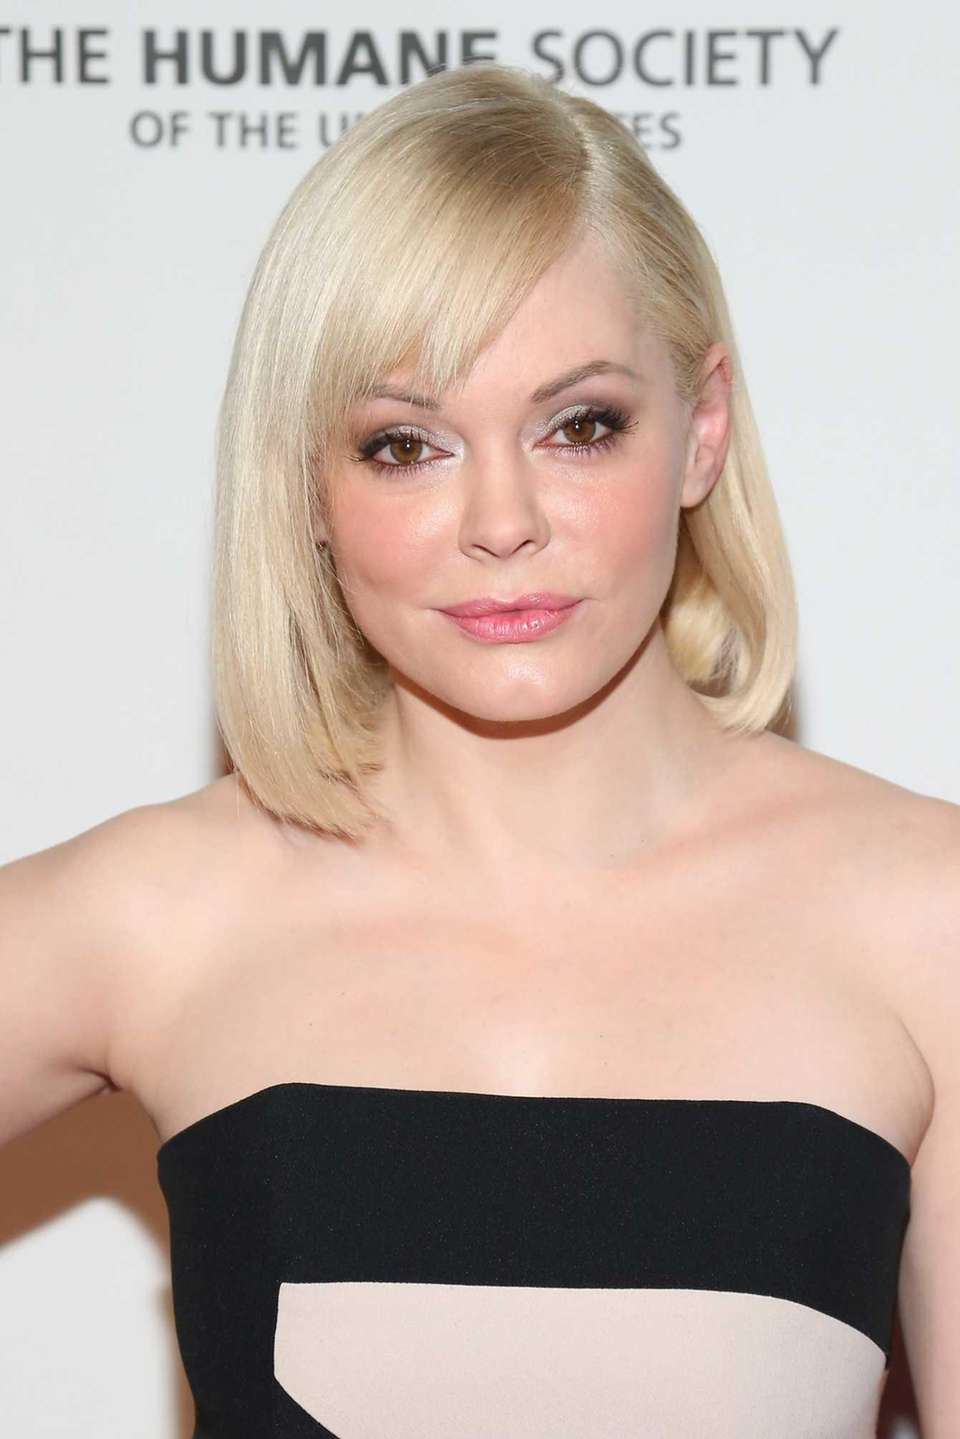 Rose McGowan was born on Sept. 5, 1973.